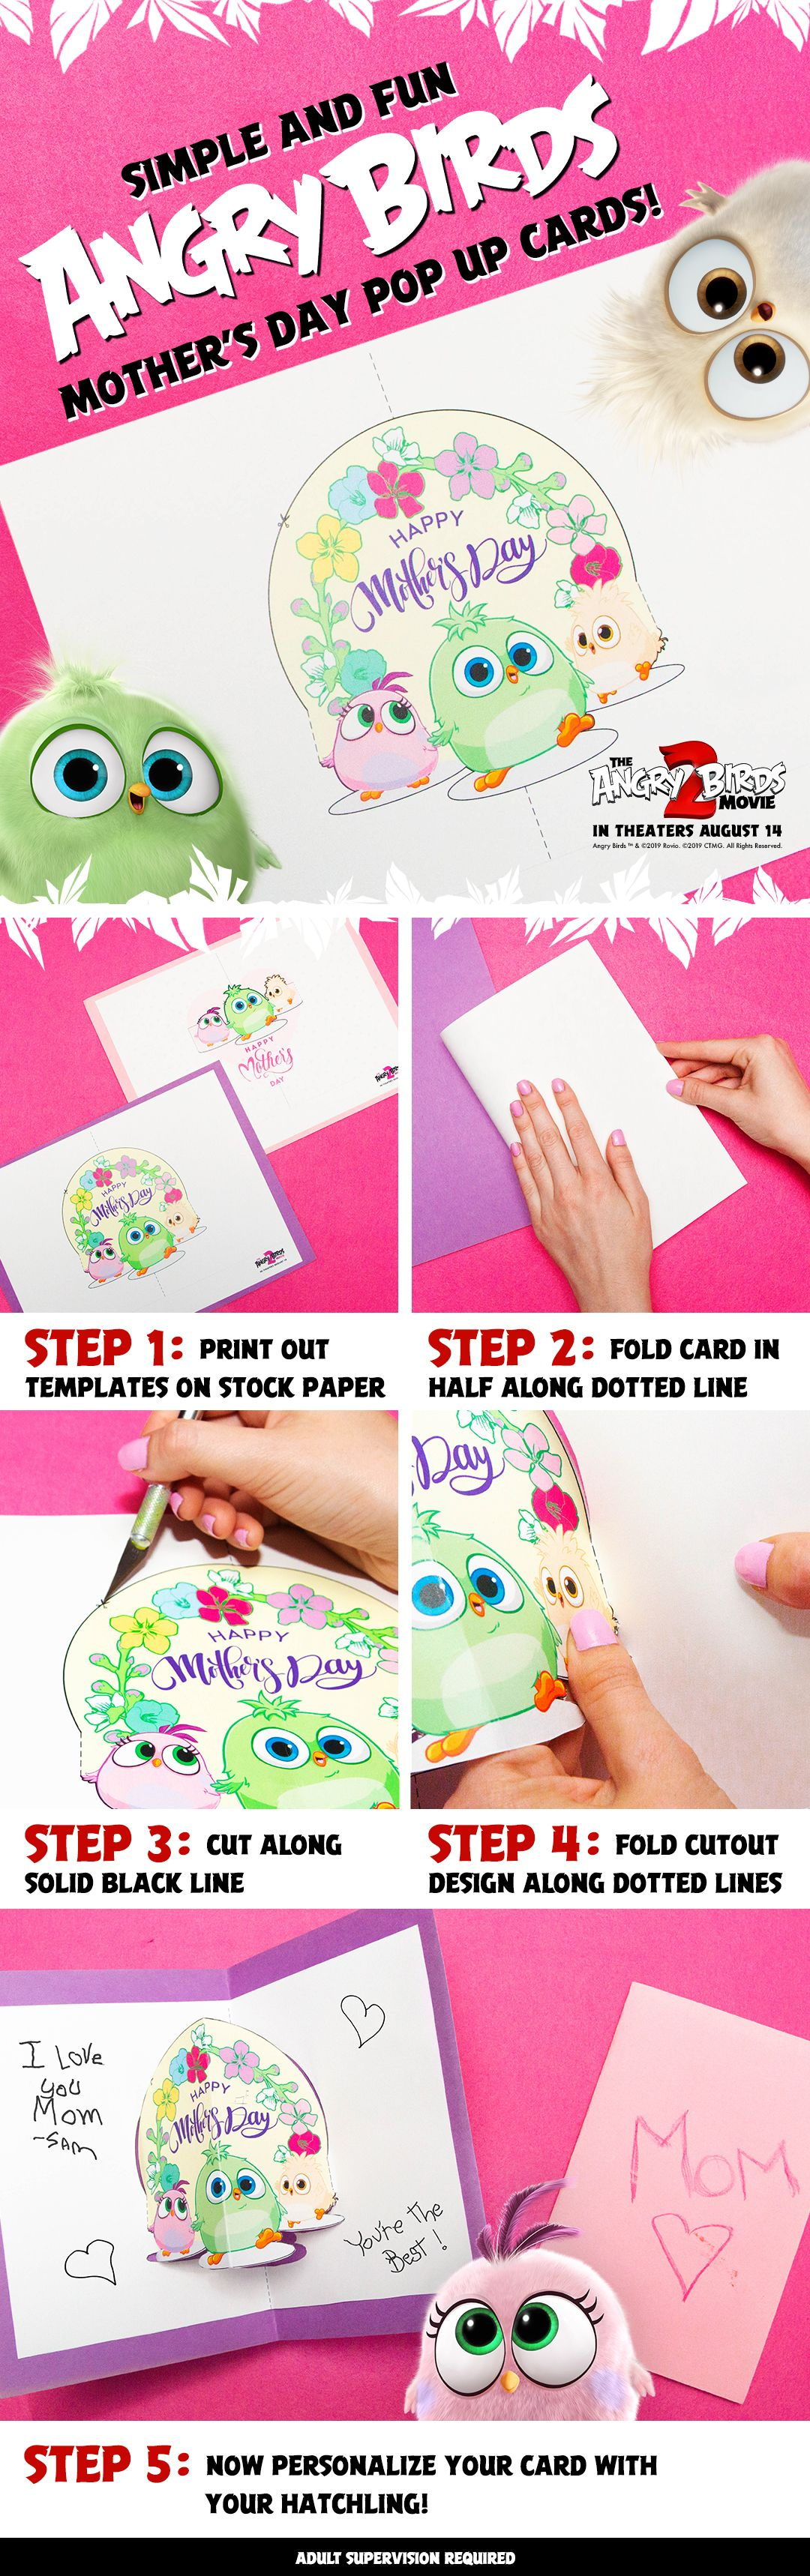 follow these simple instructions to diy your own popup